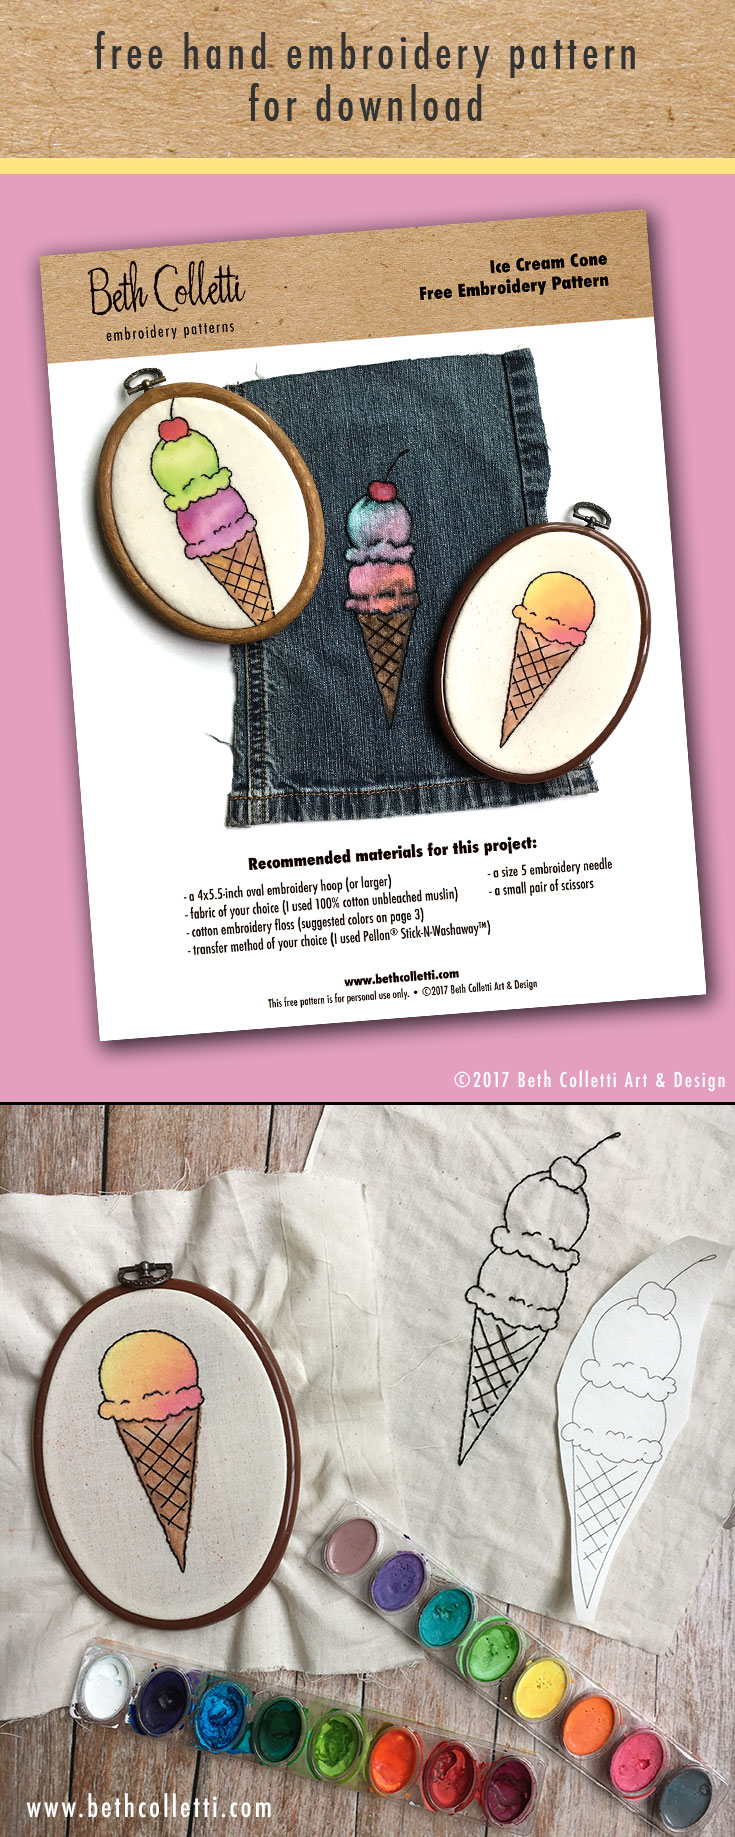 Free Downloadable Ice Cream Cone Embroidery Pattern + 4 Different Ways to Use It